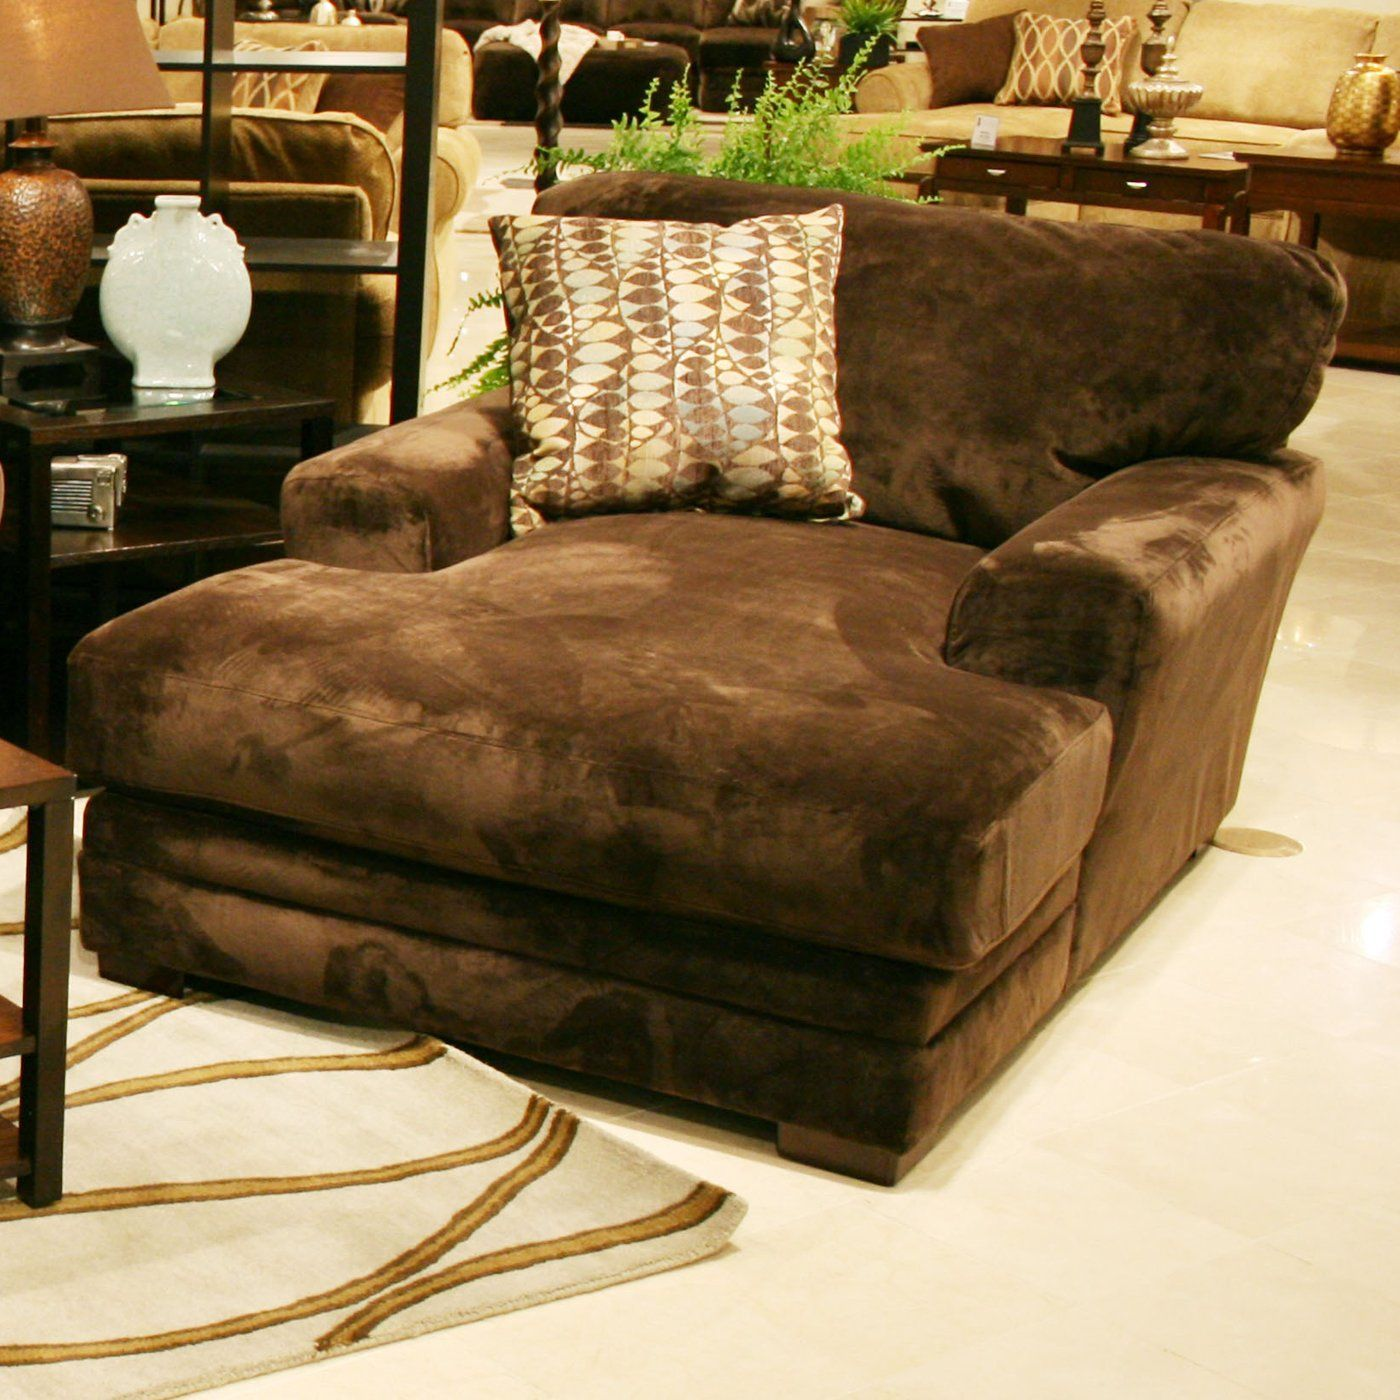 50++ Living room chaise lounge ideas in 2021